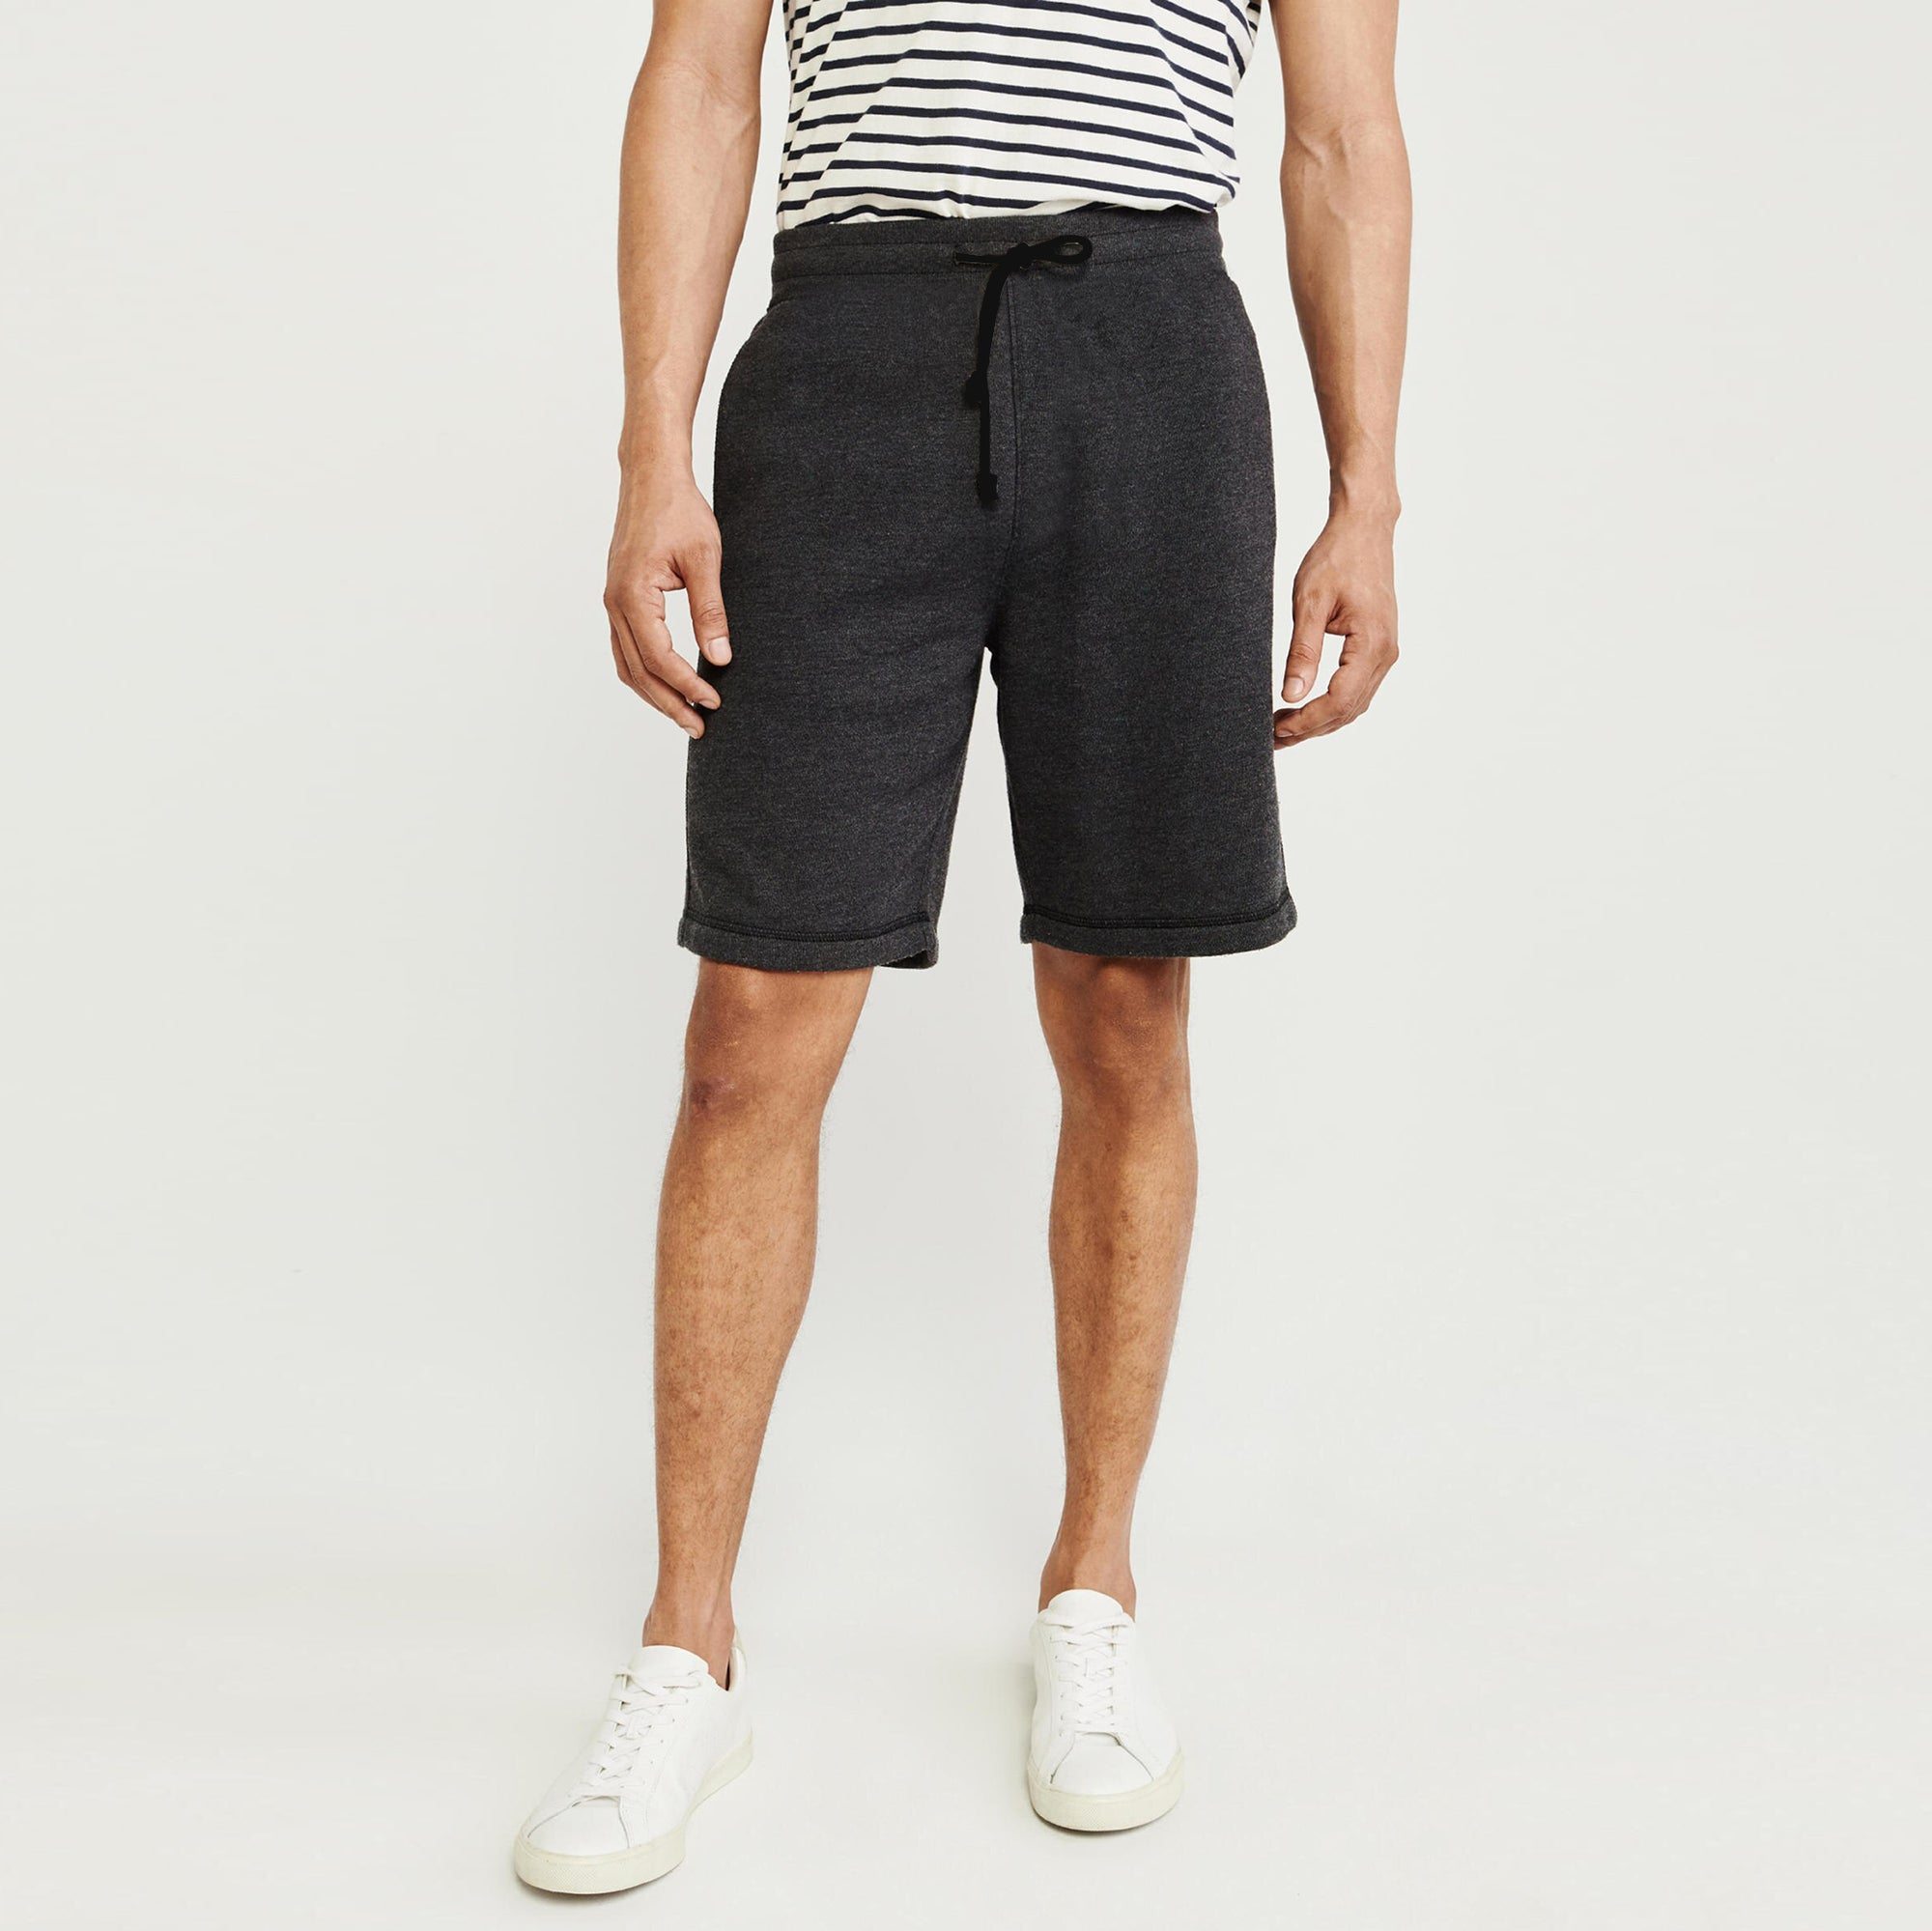 Next Summer Terry Jersey Short For Men-SK0363